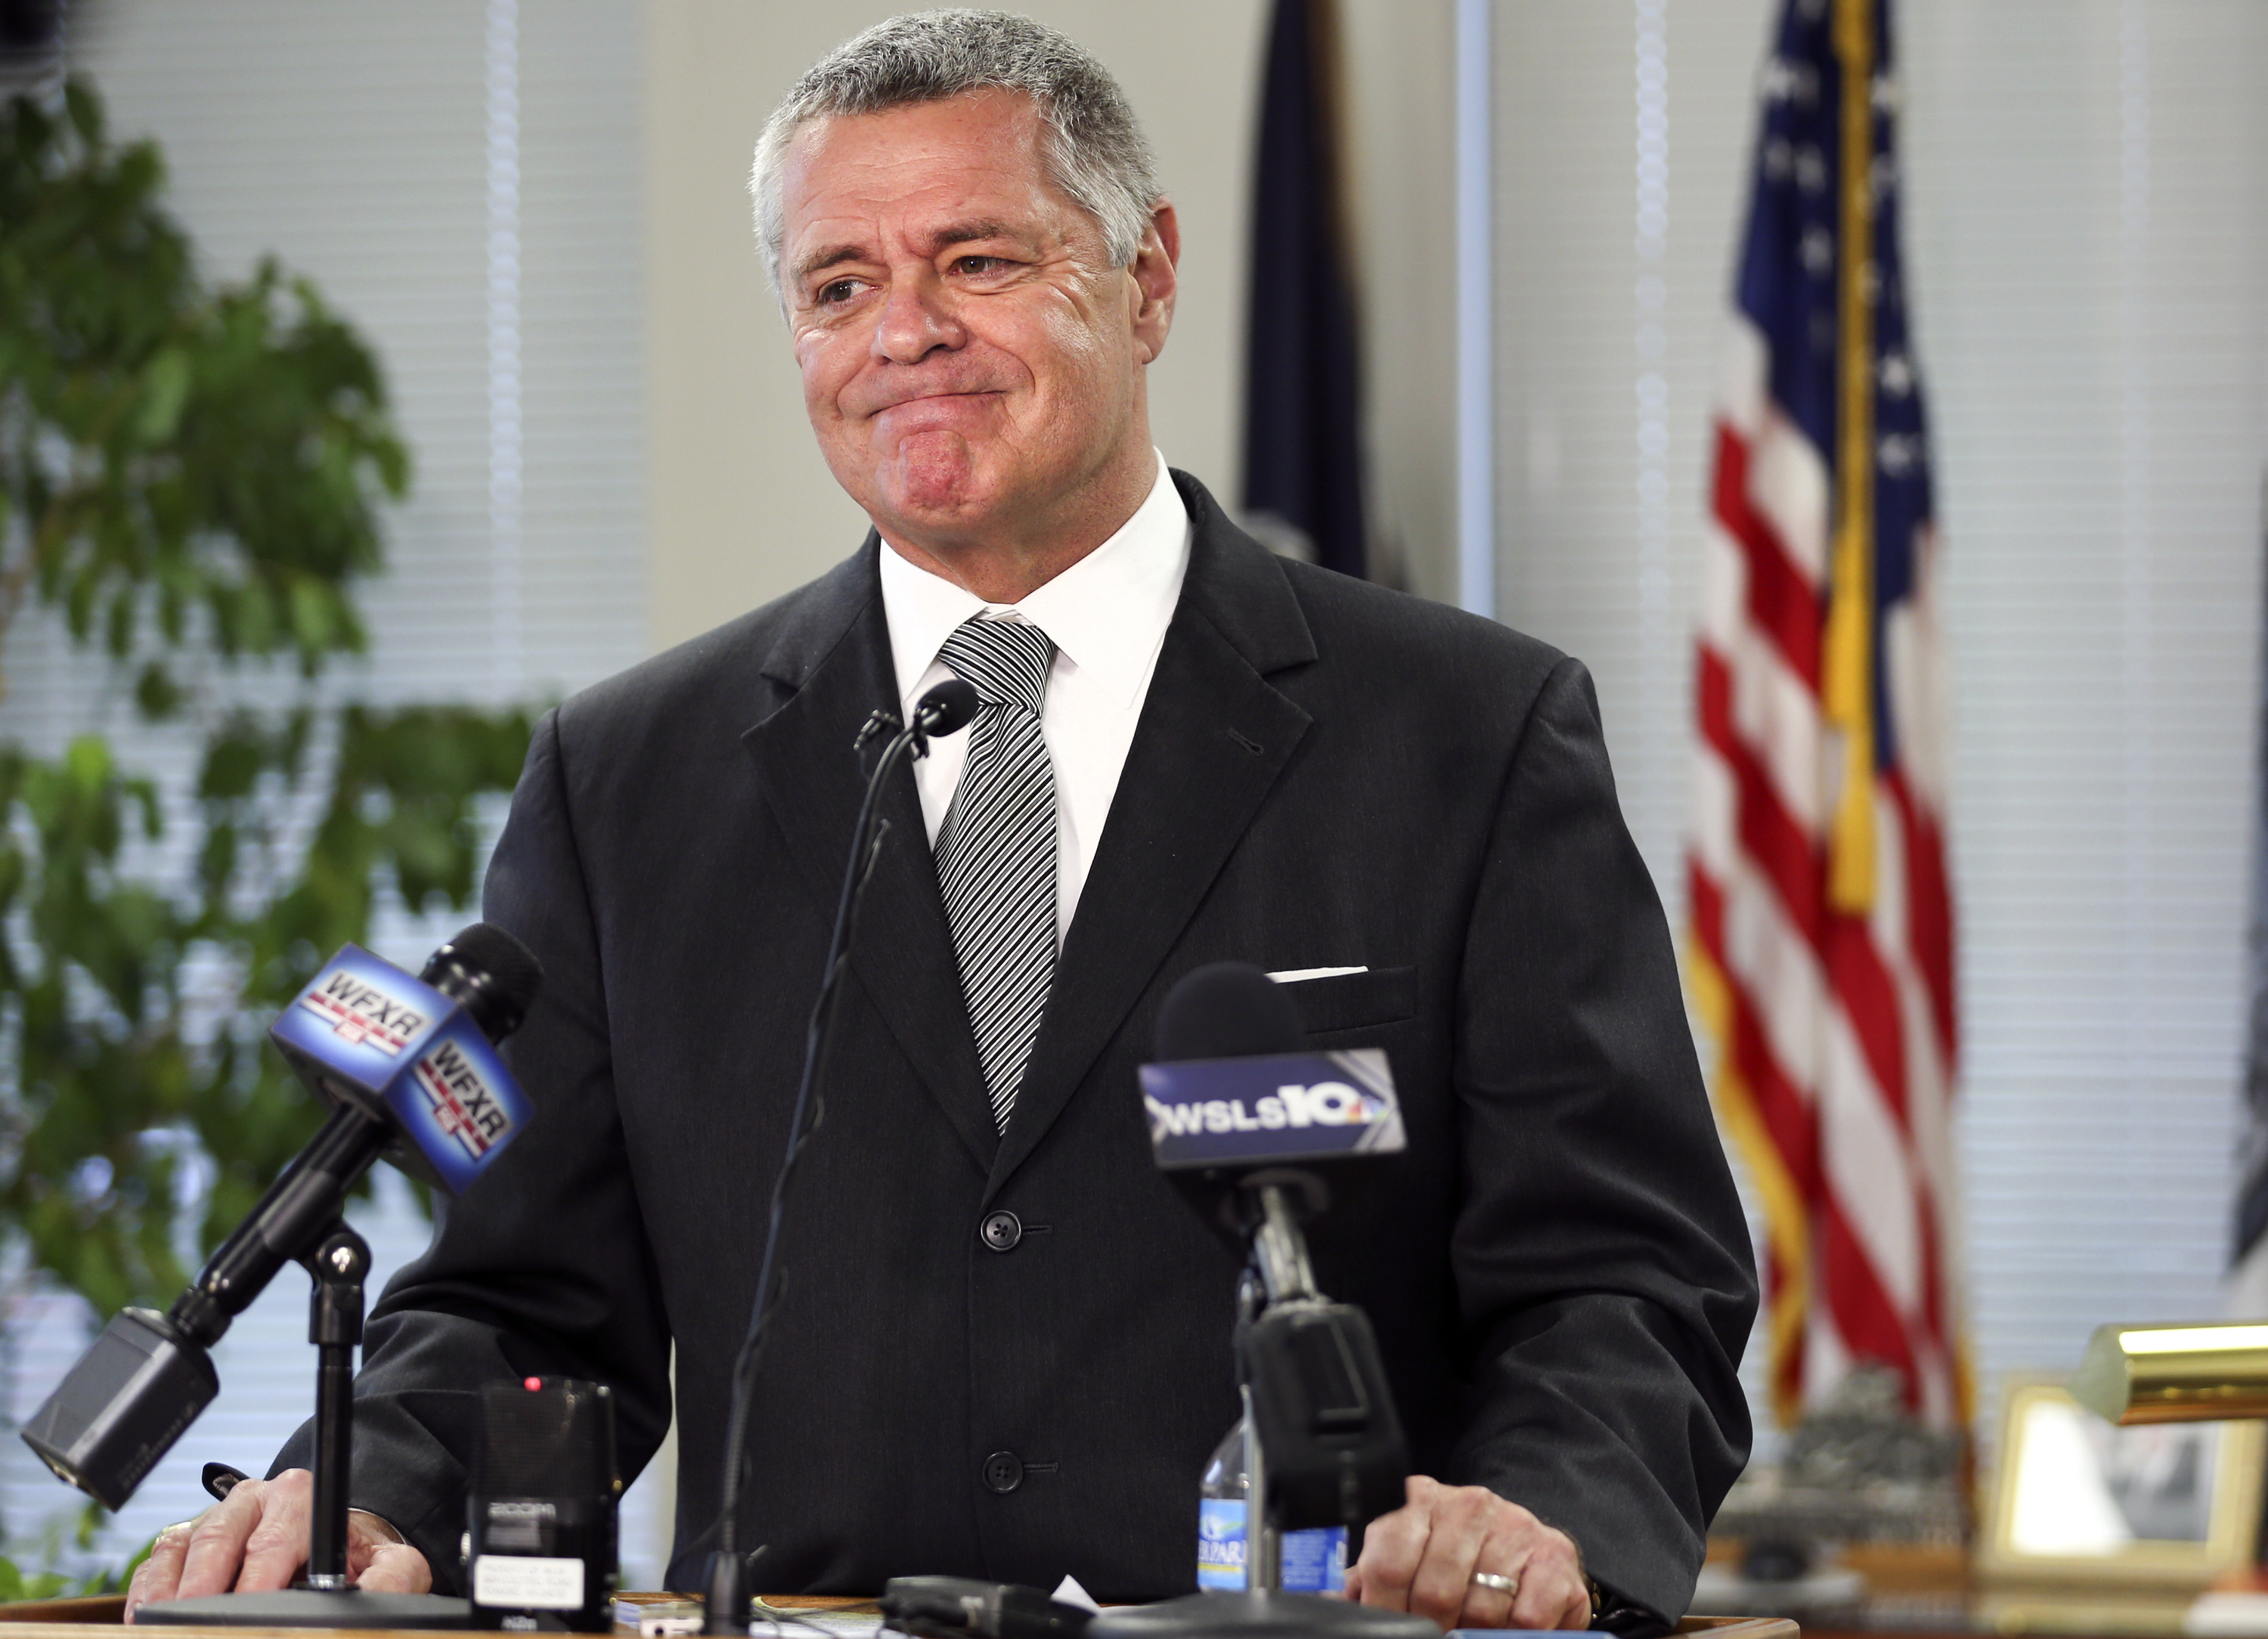 Mayor David Bowers on Nov. 9, 2015.